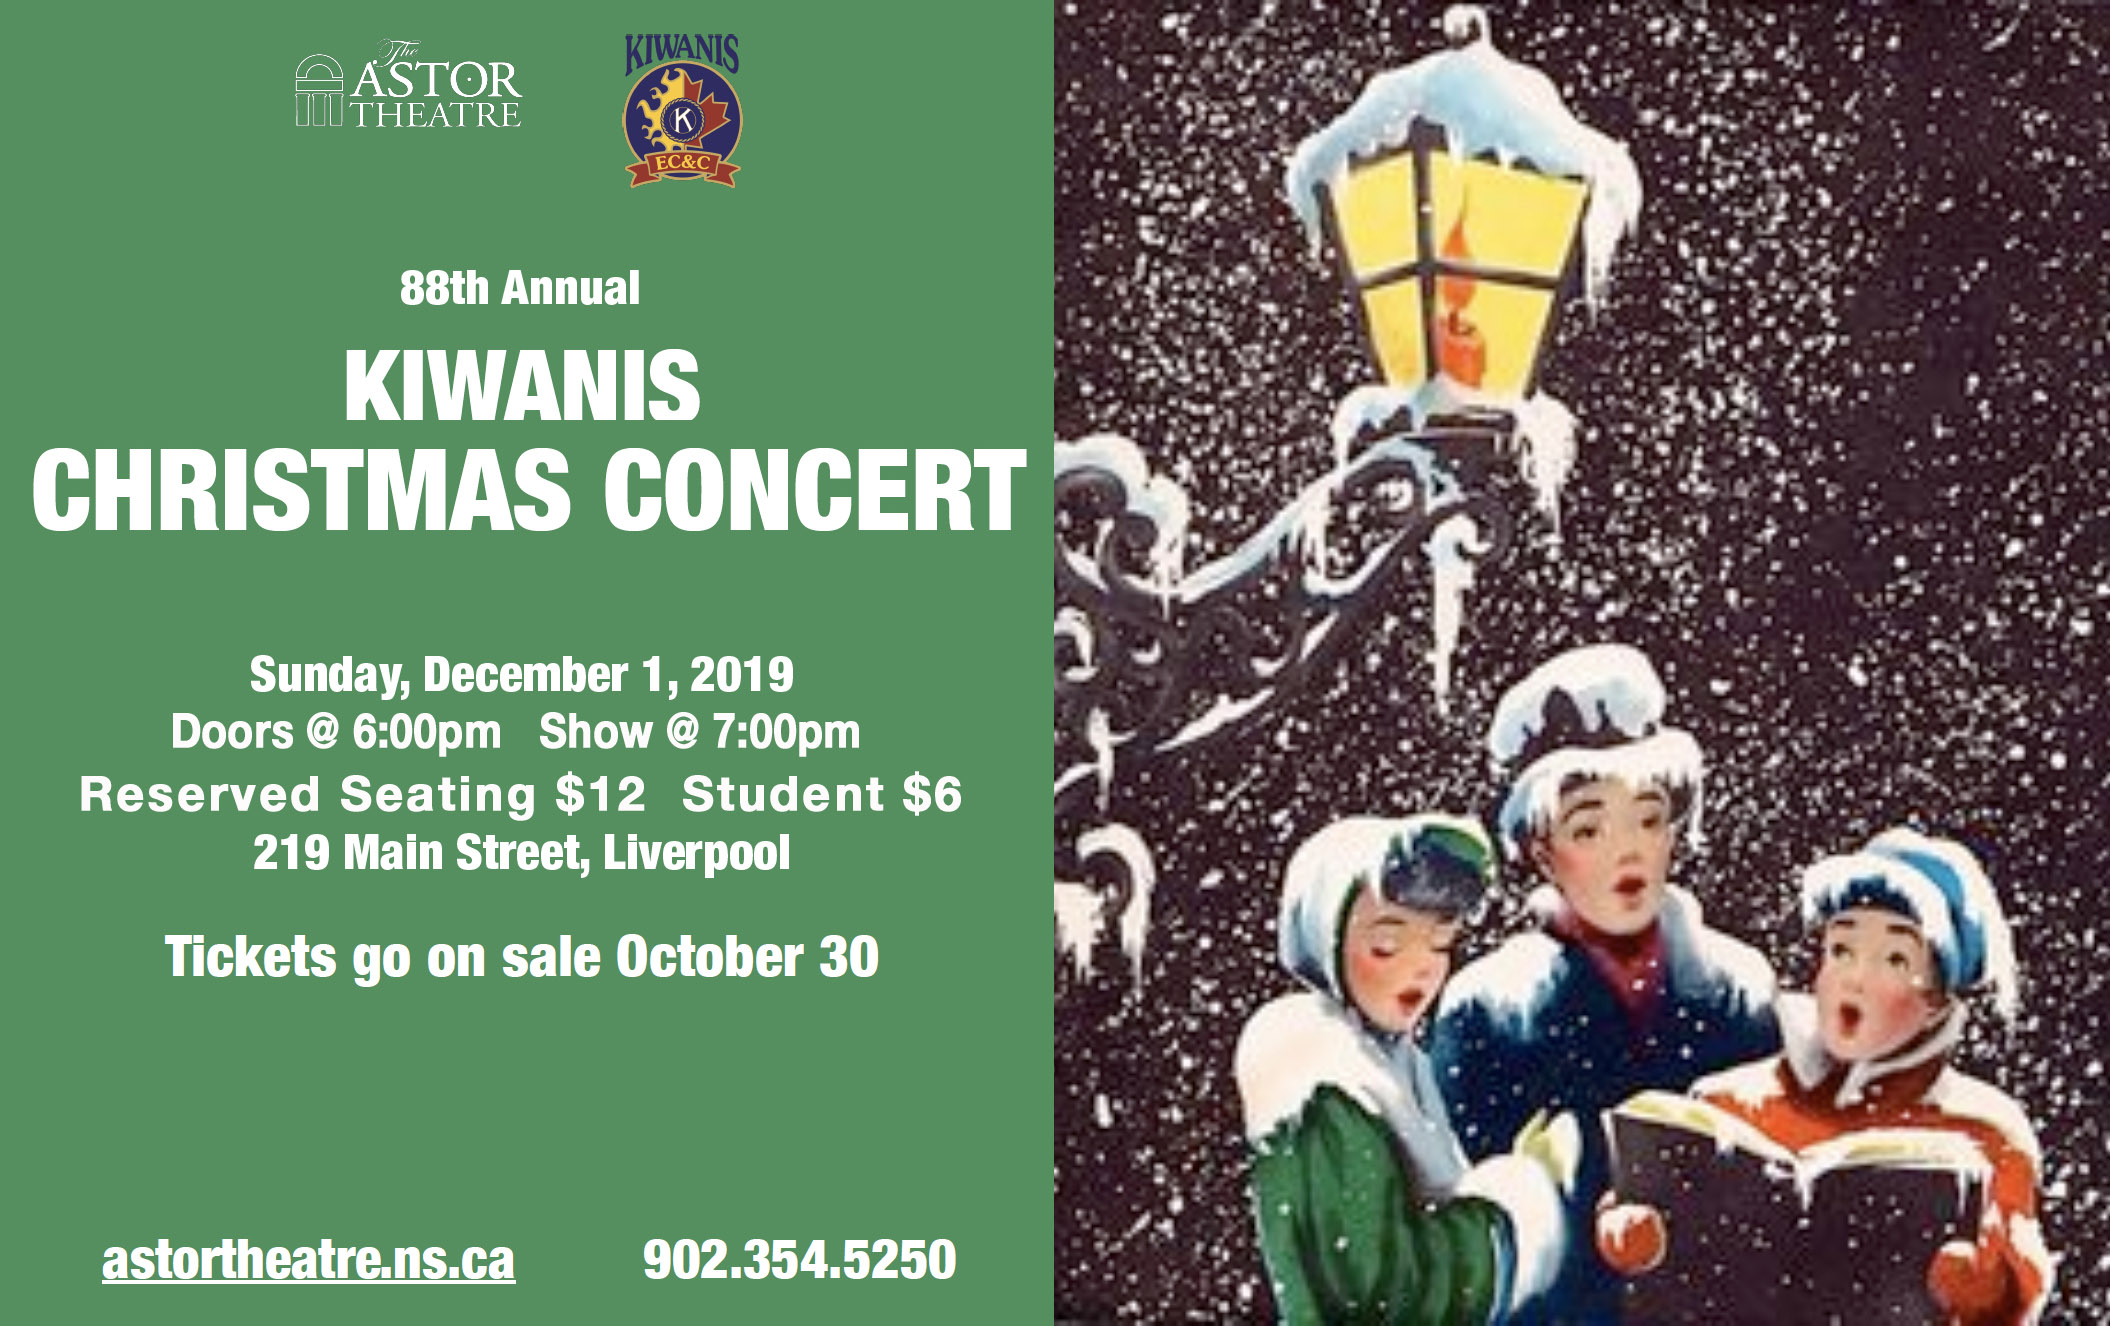 88th Annual Kiwanis Christmas Concert @ Astor Theatre